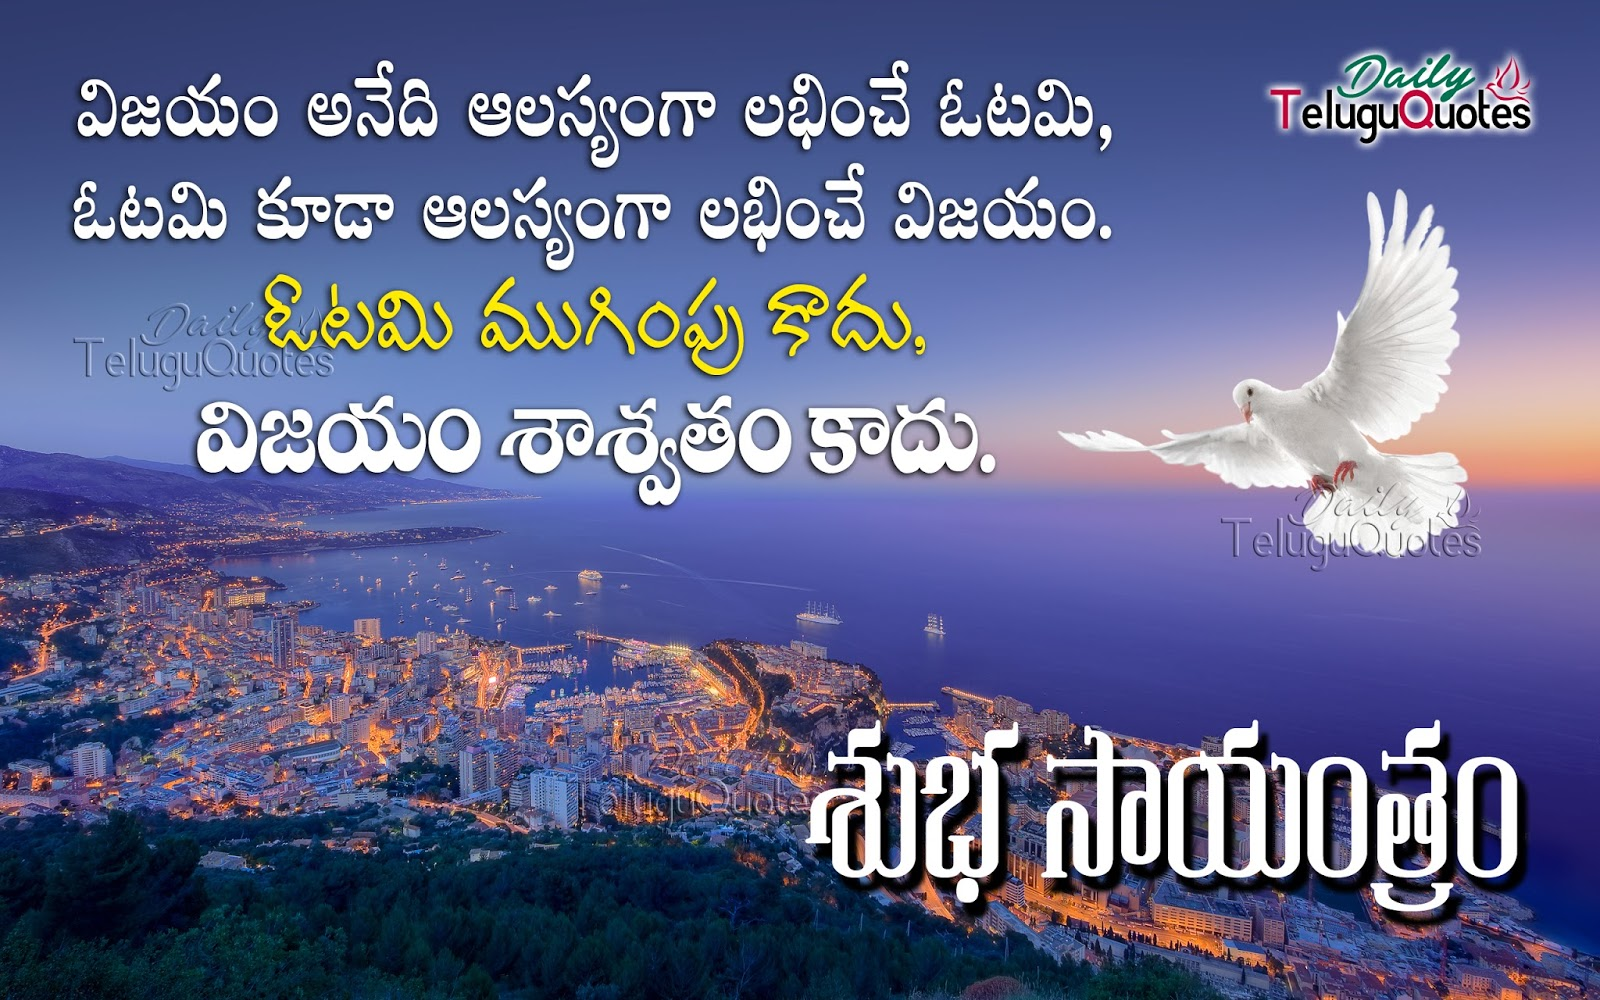 Telugu famous good evening greeting cards dailyteluguquotes famous good evening victory quotes and greetings hd wallpapers free downloads m4hsunfo